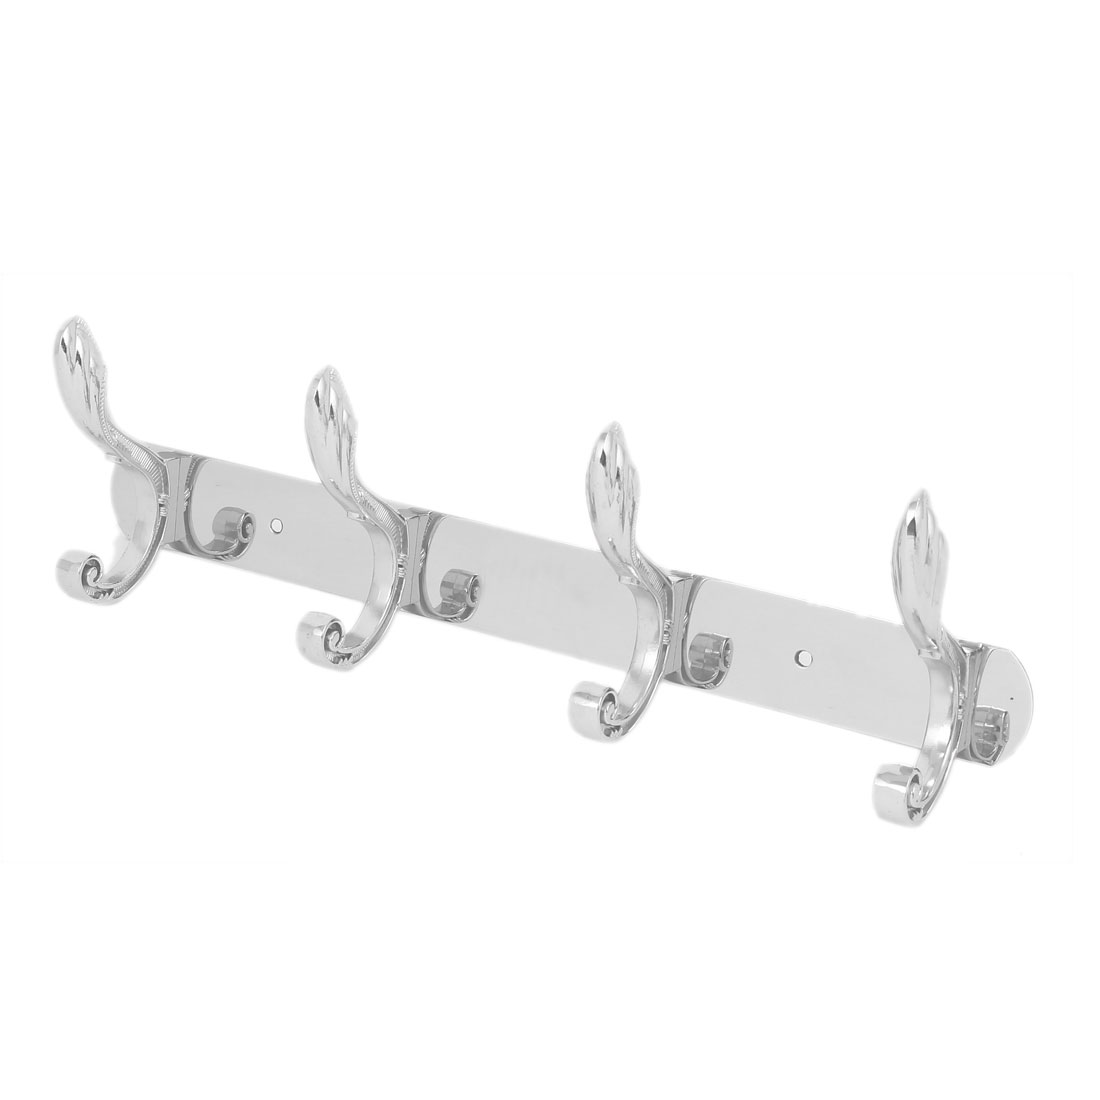 Stainless Steel Wall Mounted 4 Double Hook Hanger Rail Rack for Robe Coat